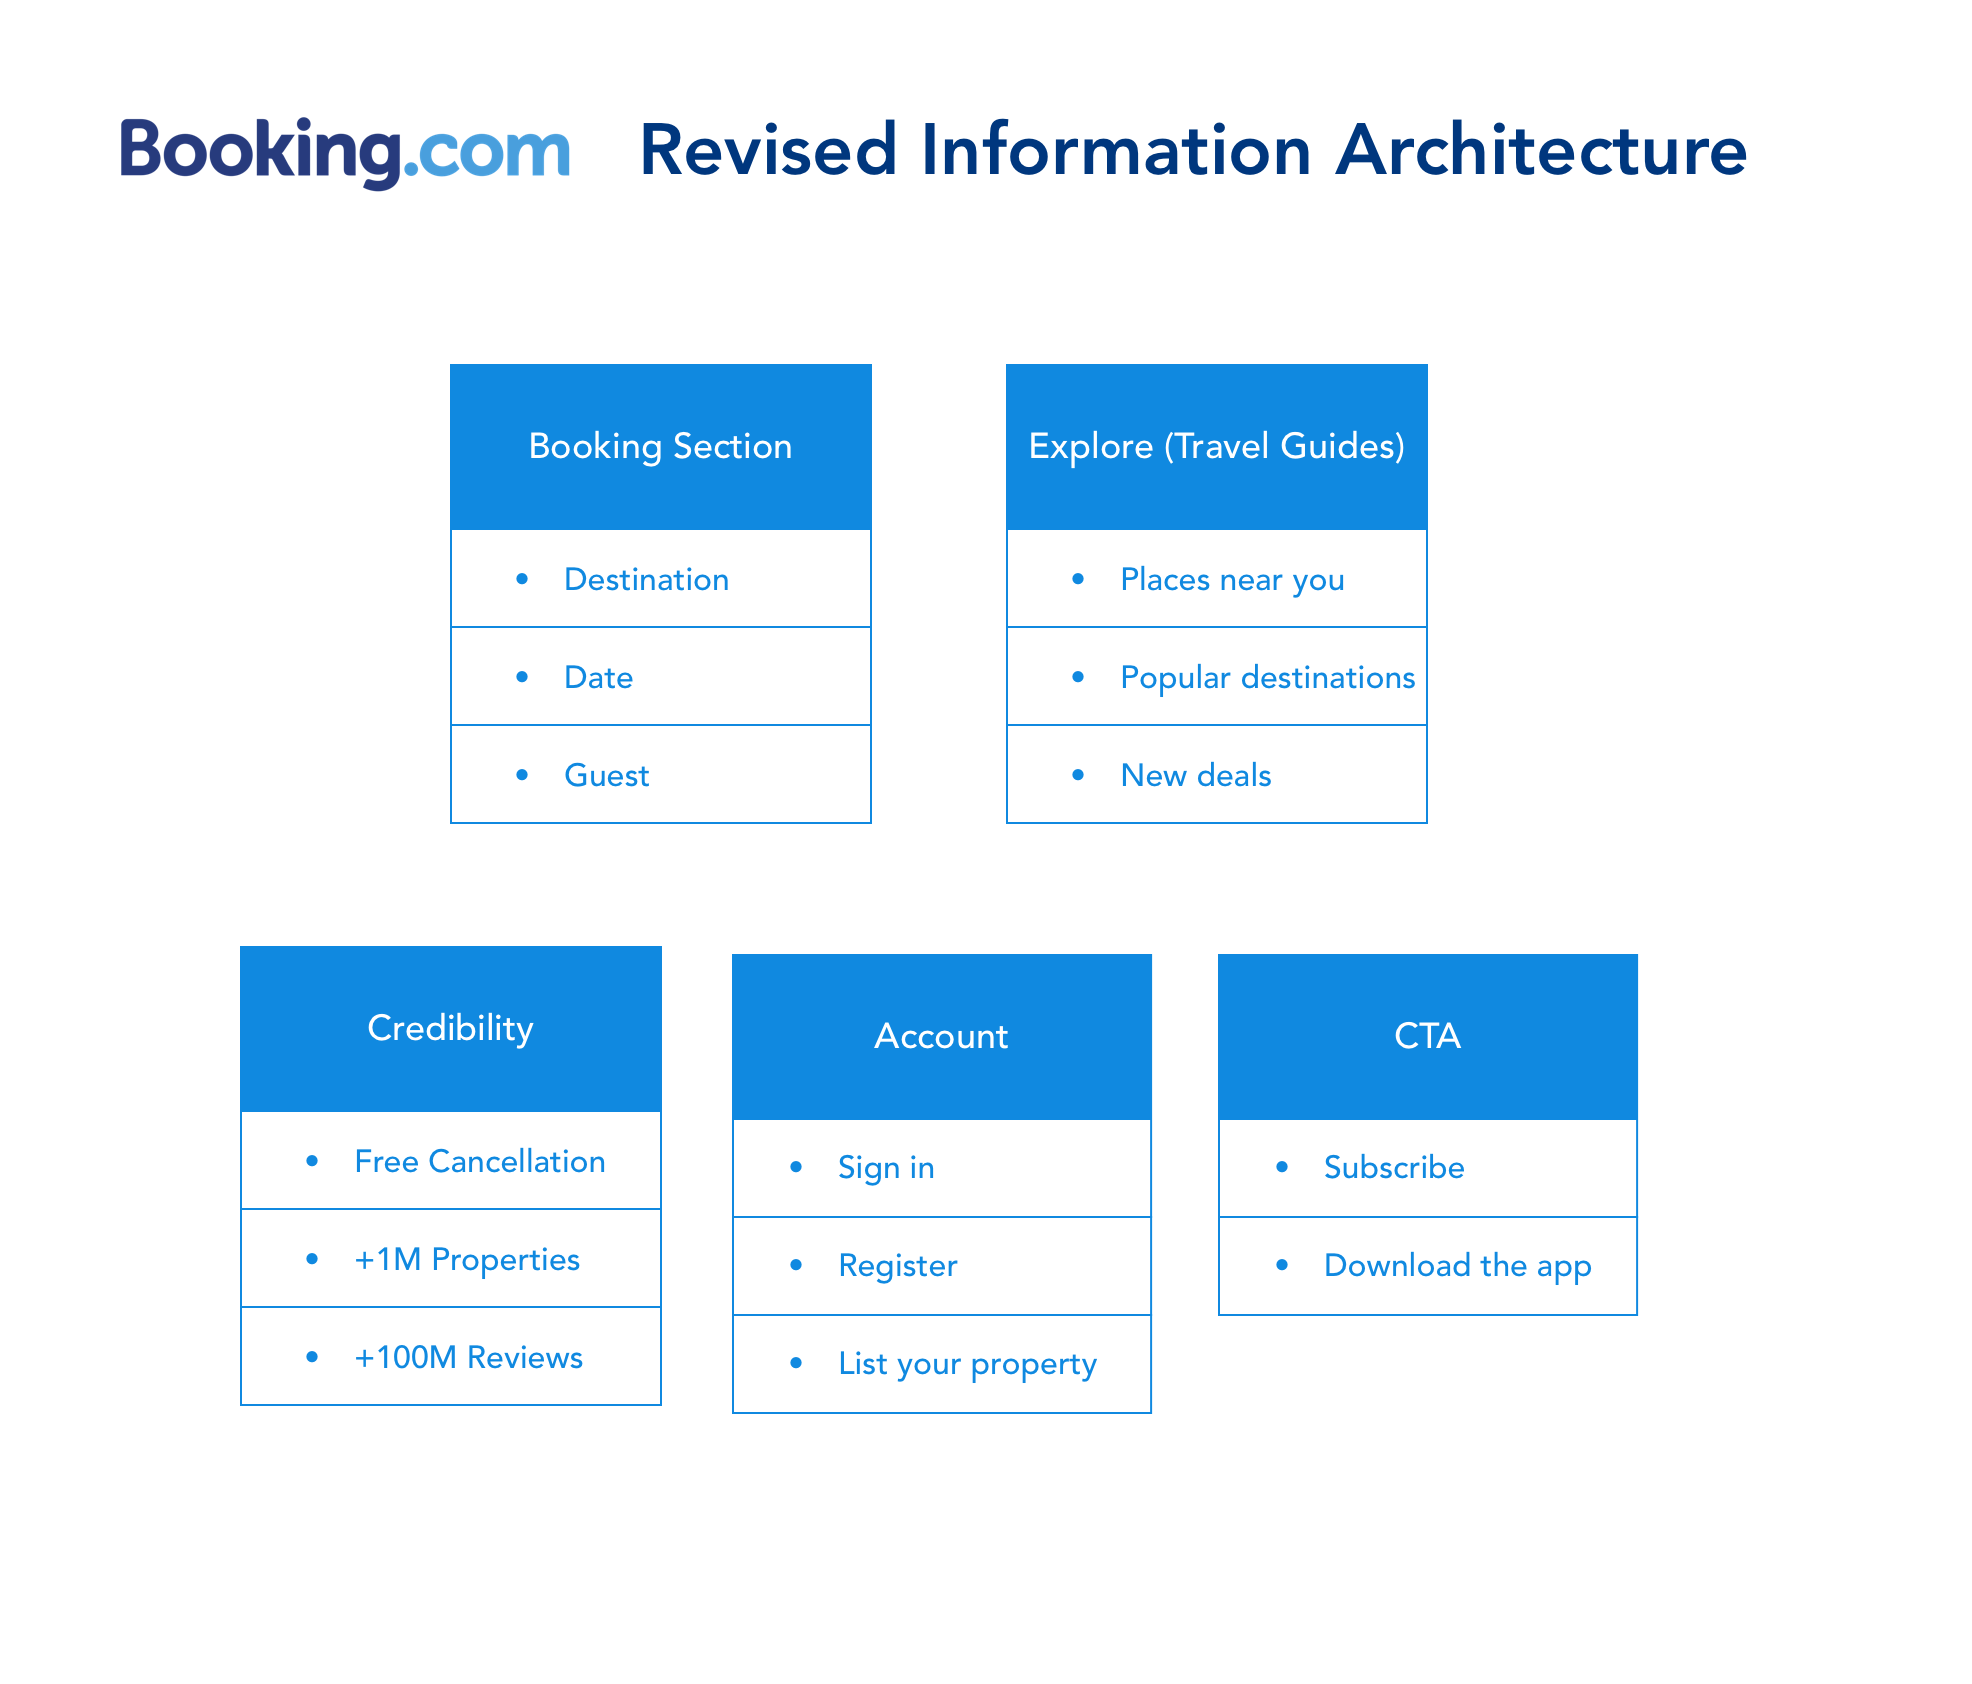 How To Find Booking Accommodations